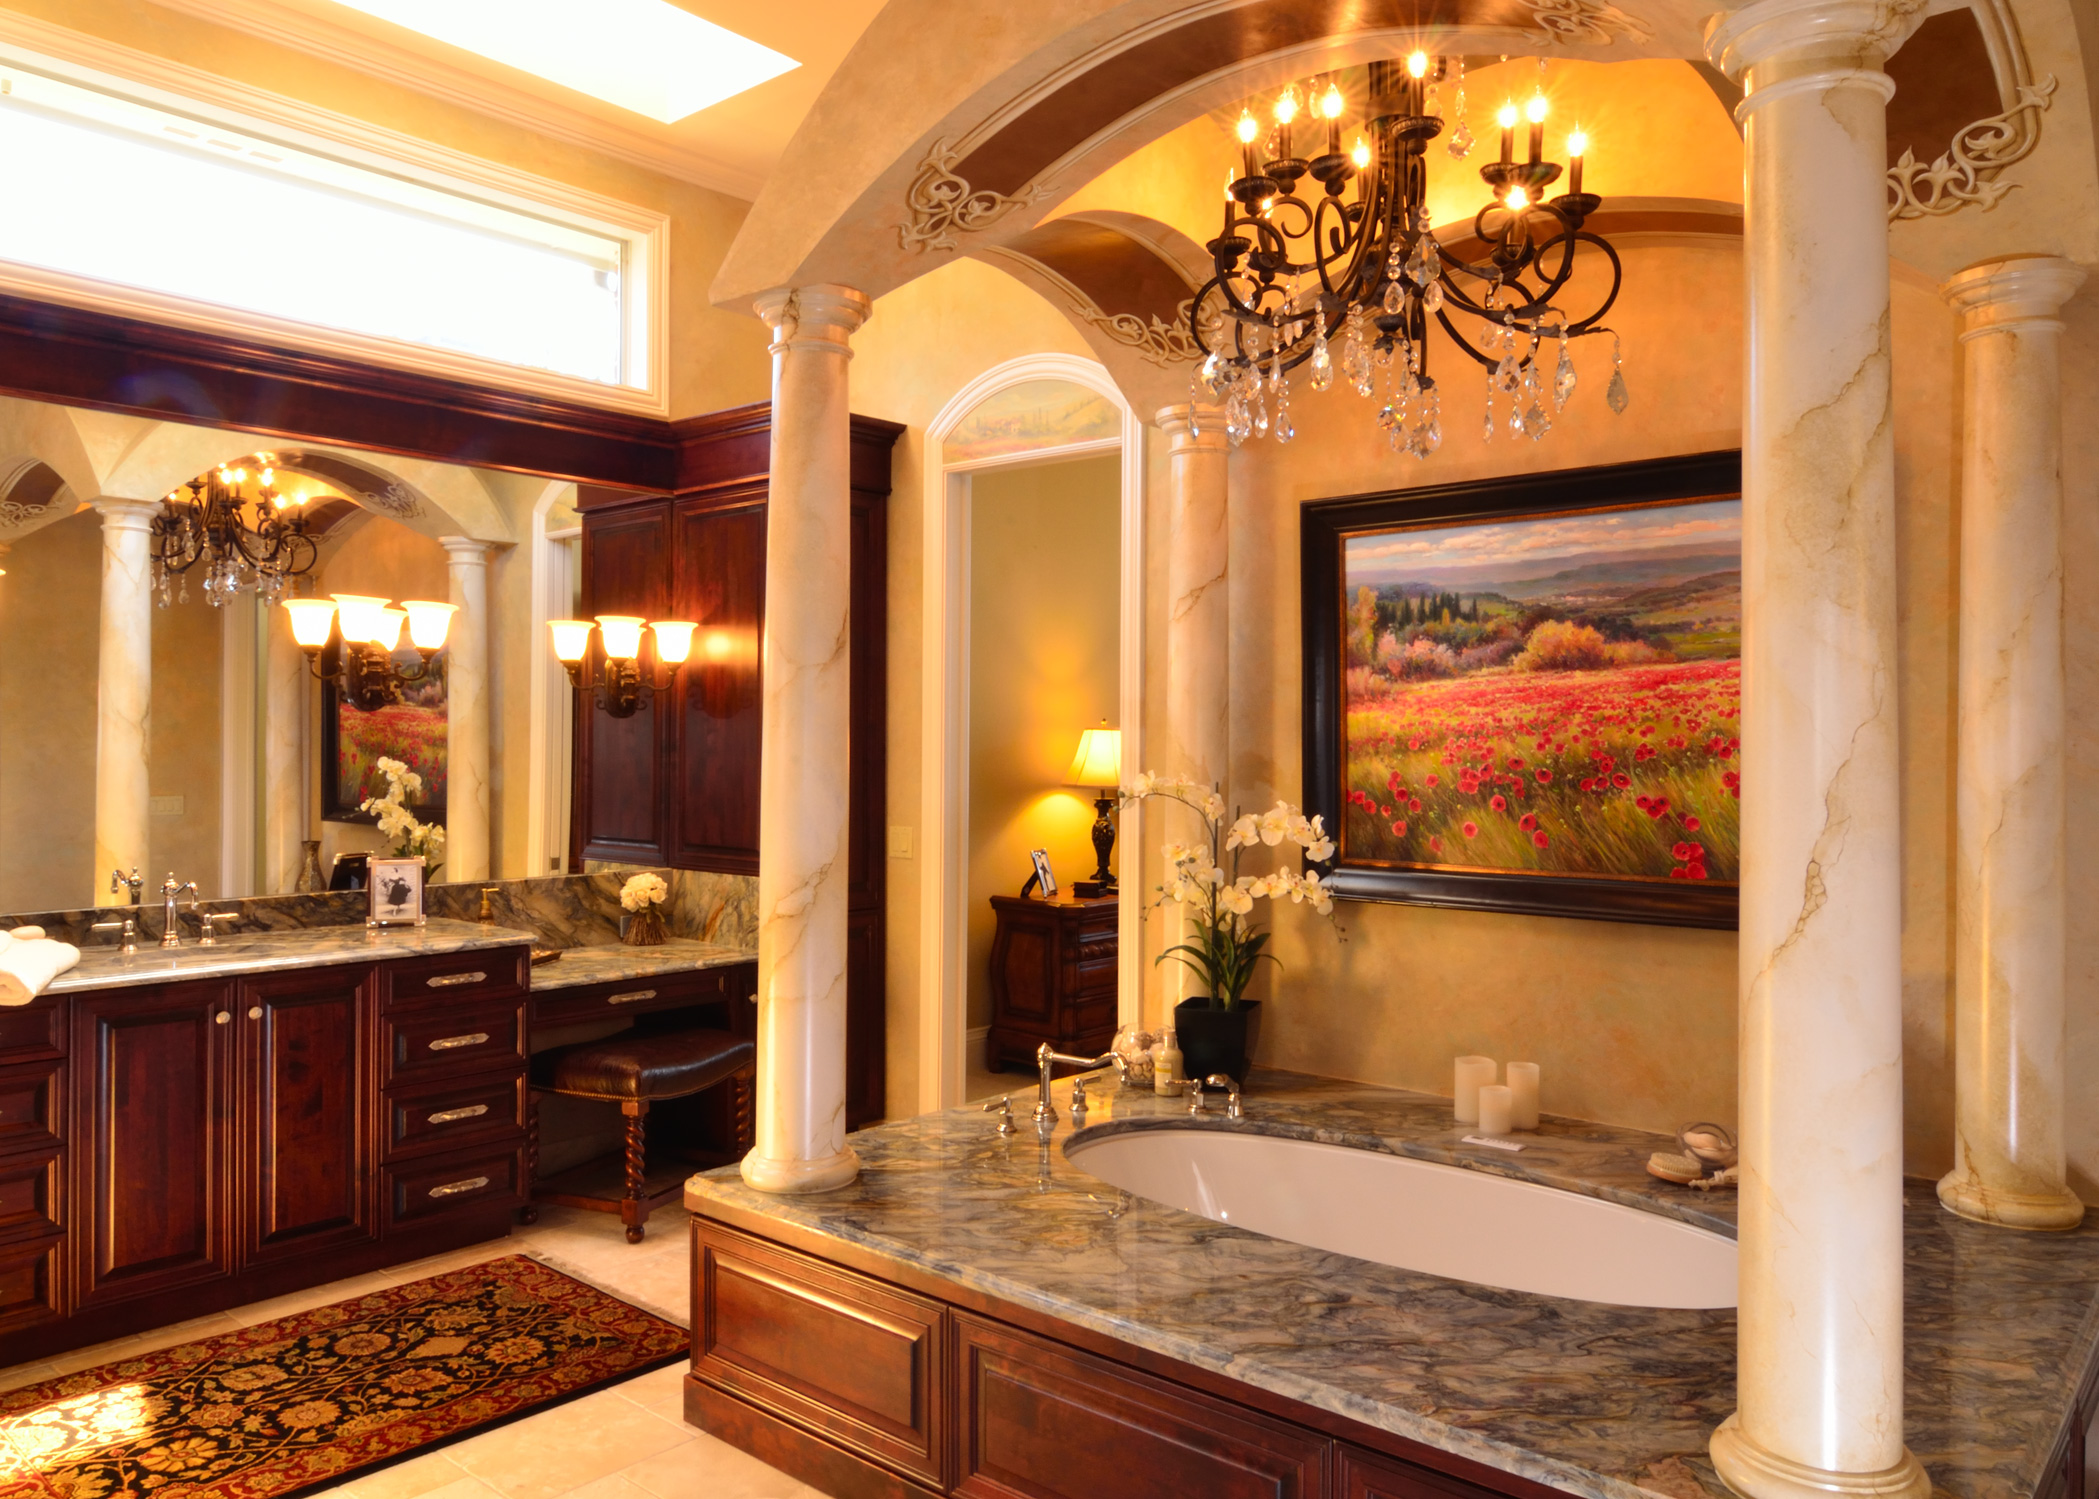 photo gallery of the master bathroom design in the tuscan - Tuscan Bathroom Design